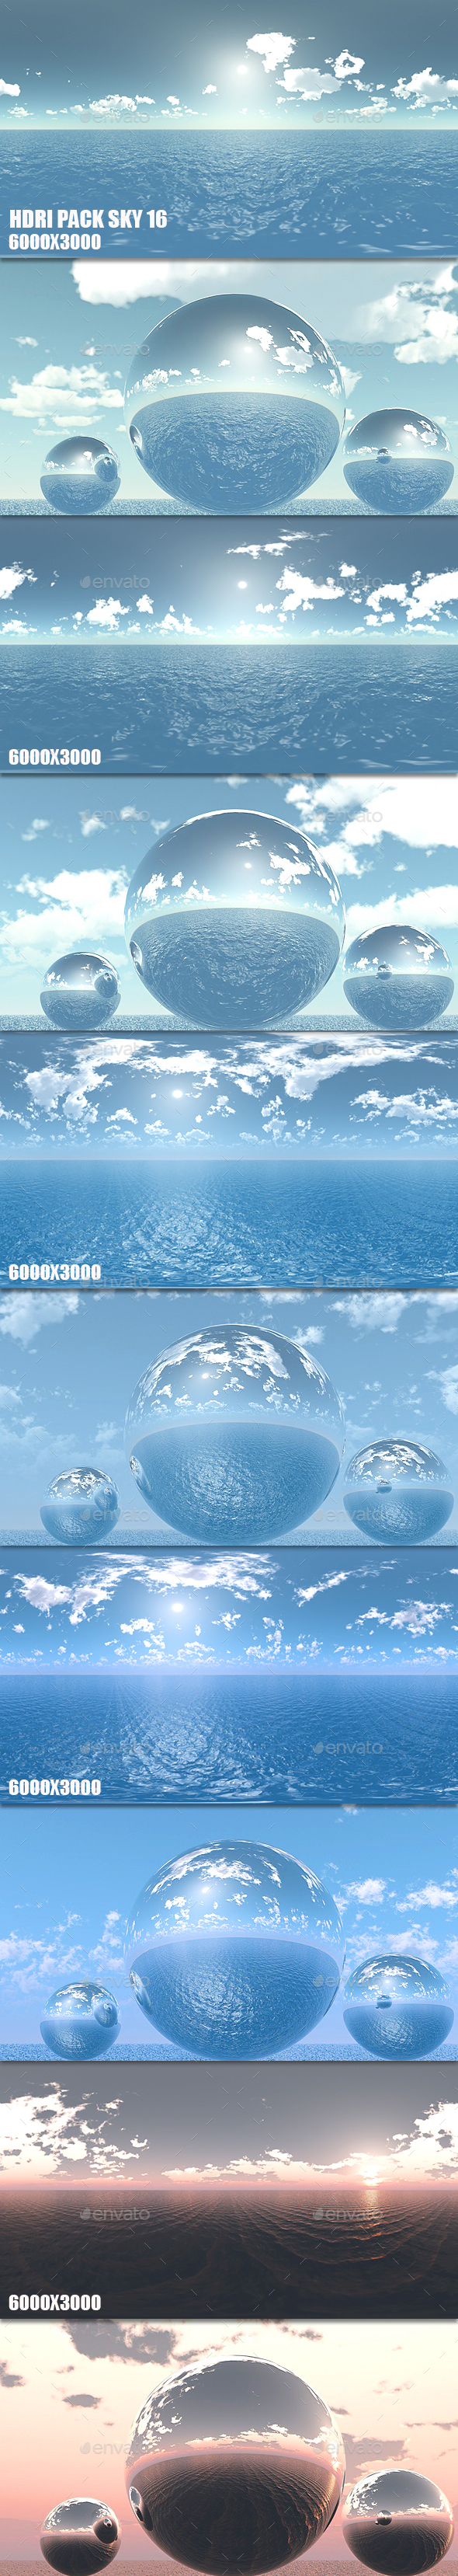 HDRI Pack Sky 16 - 3DOcean Item for Sale